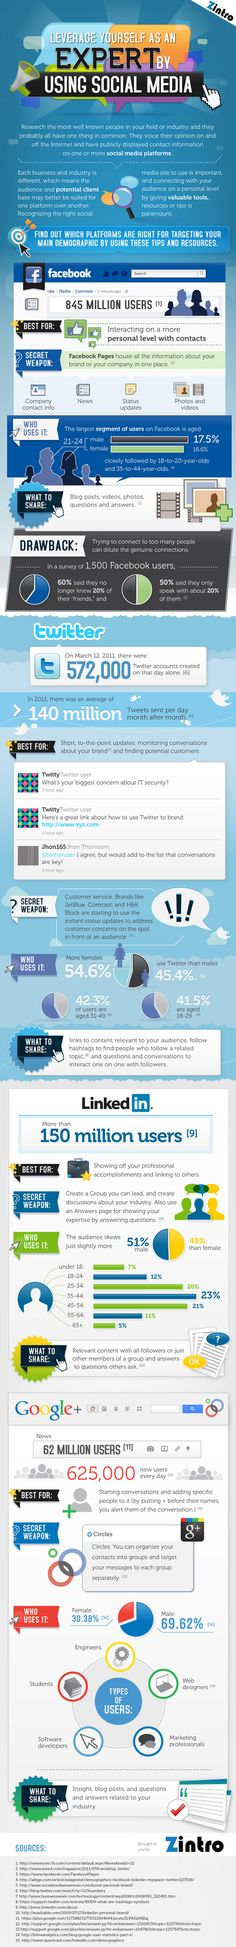 What social media platform will fit better for you? / Oct 31 '12